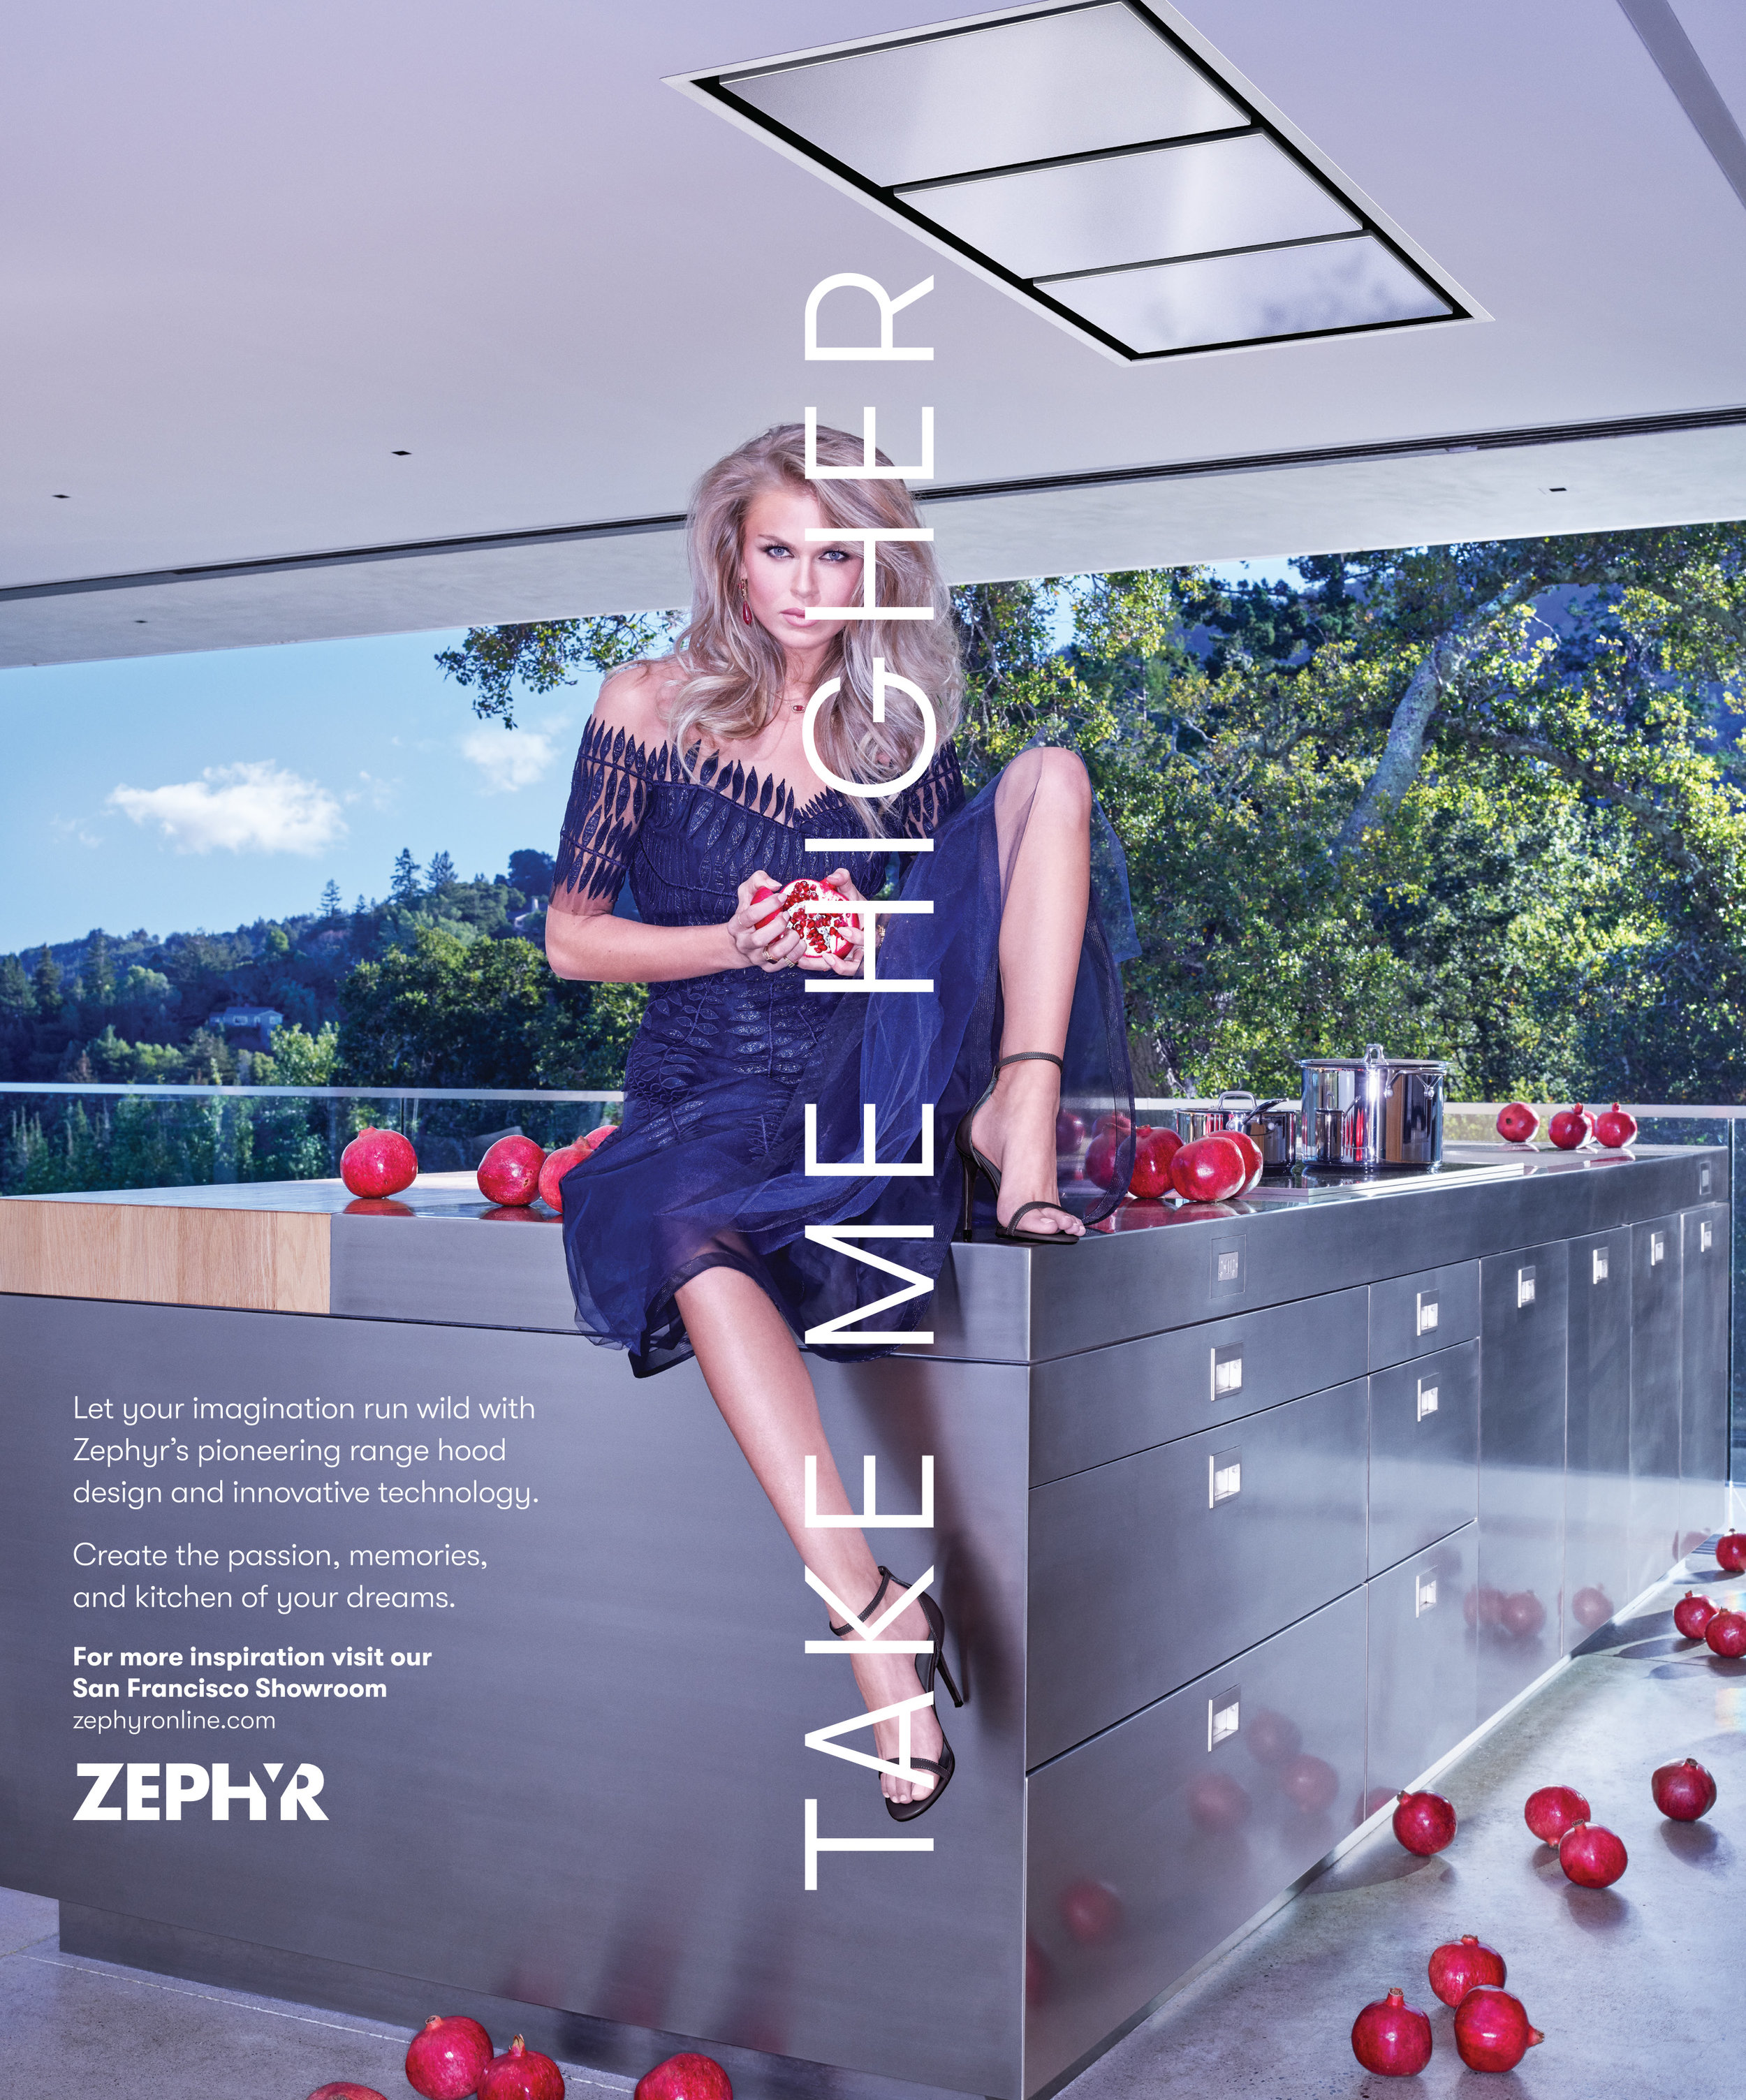 stan_musilek_commercial_photography_zephyr_ad.jpg